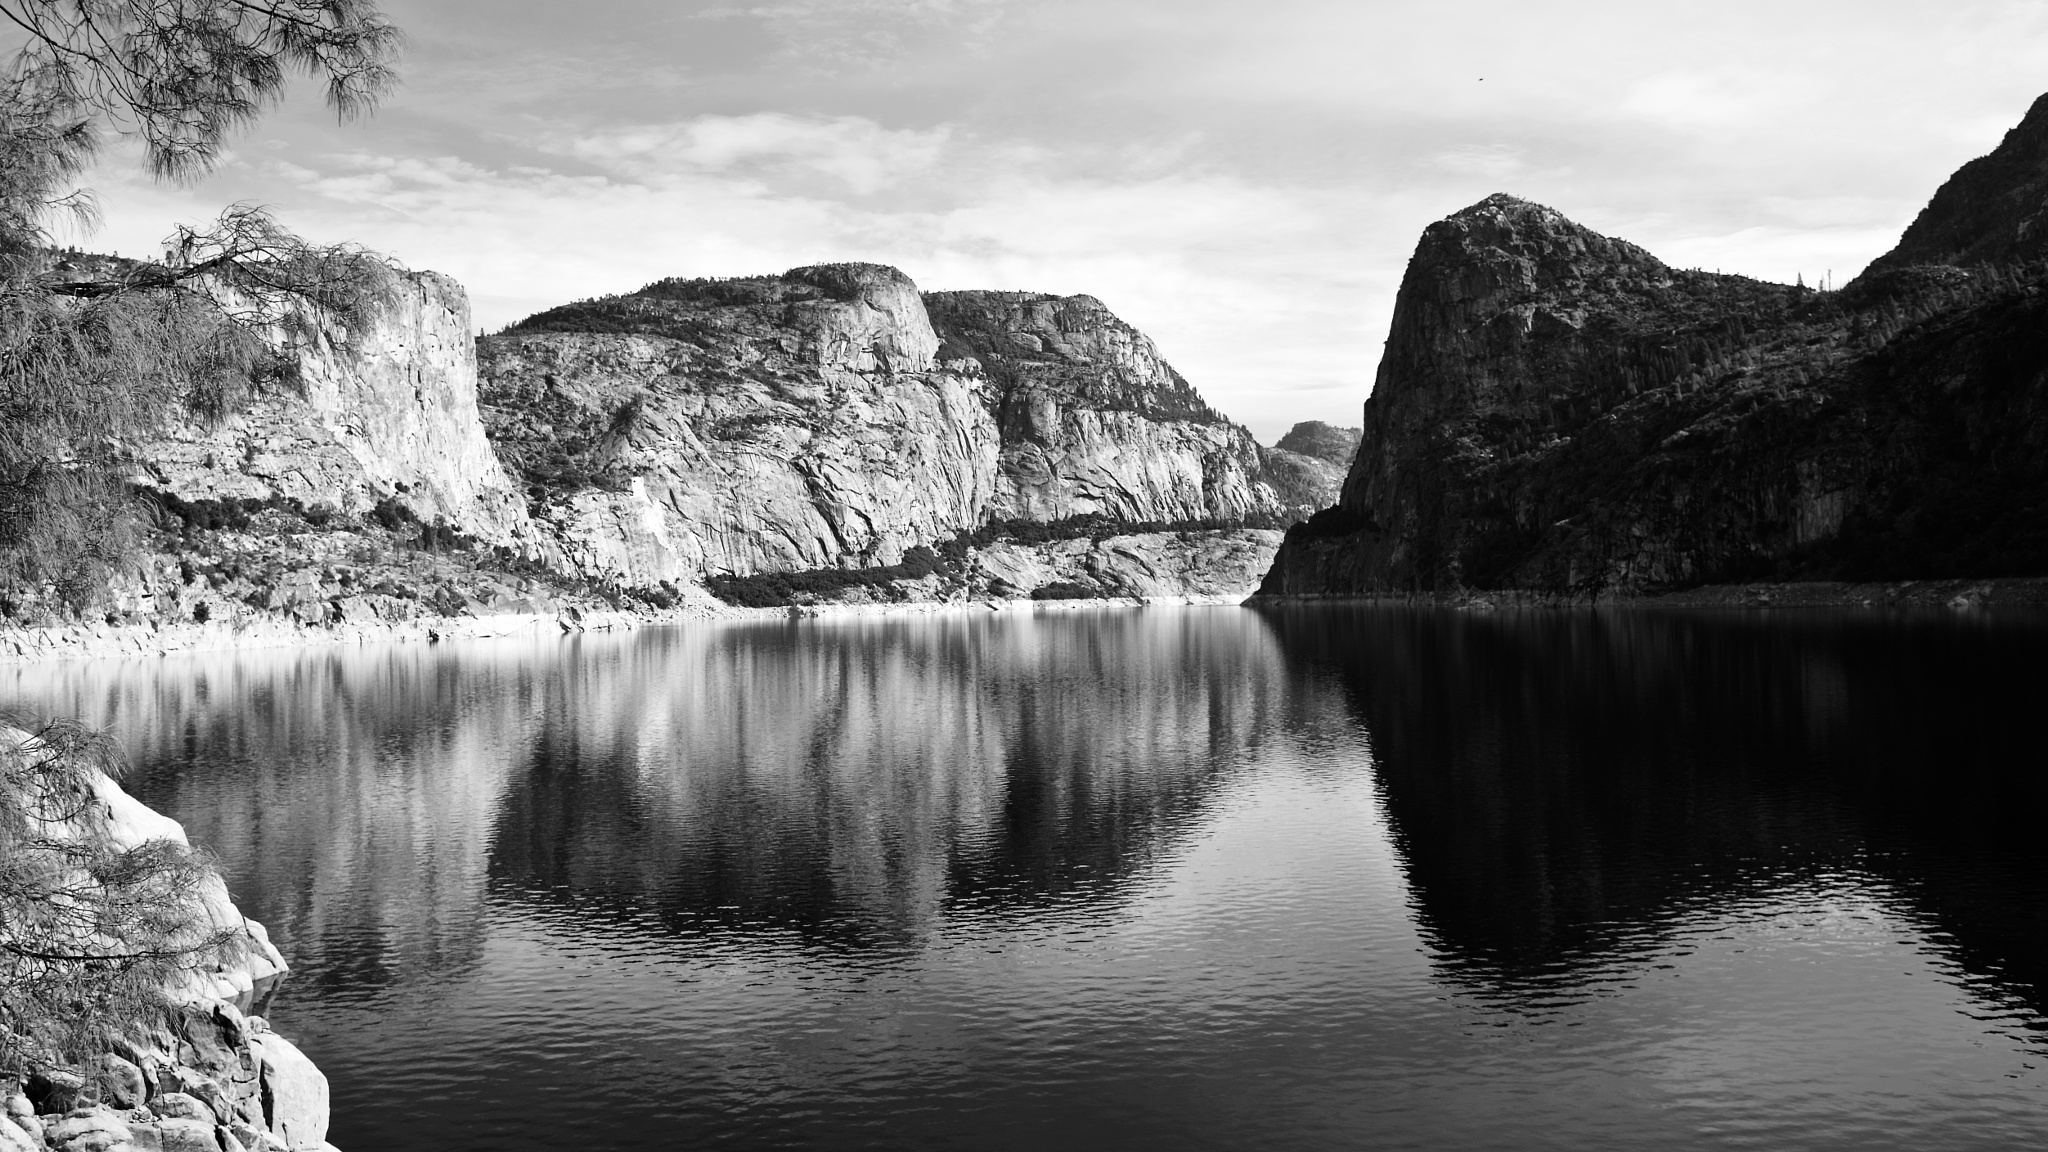 Hatch Hatchey Reservoir in Yosemite by belinda.phillips.90